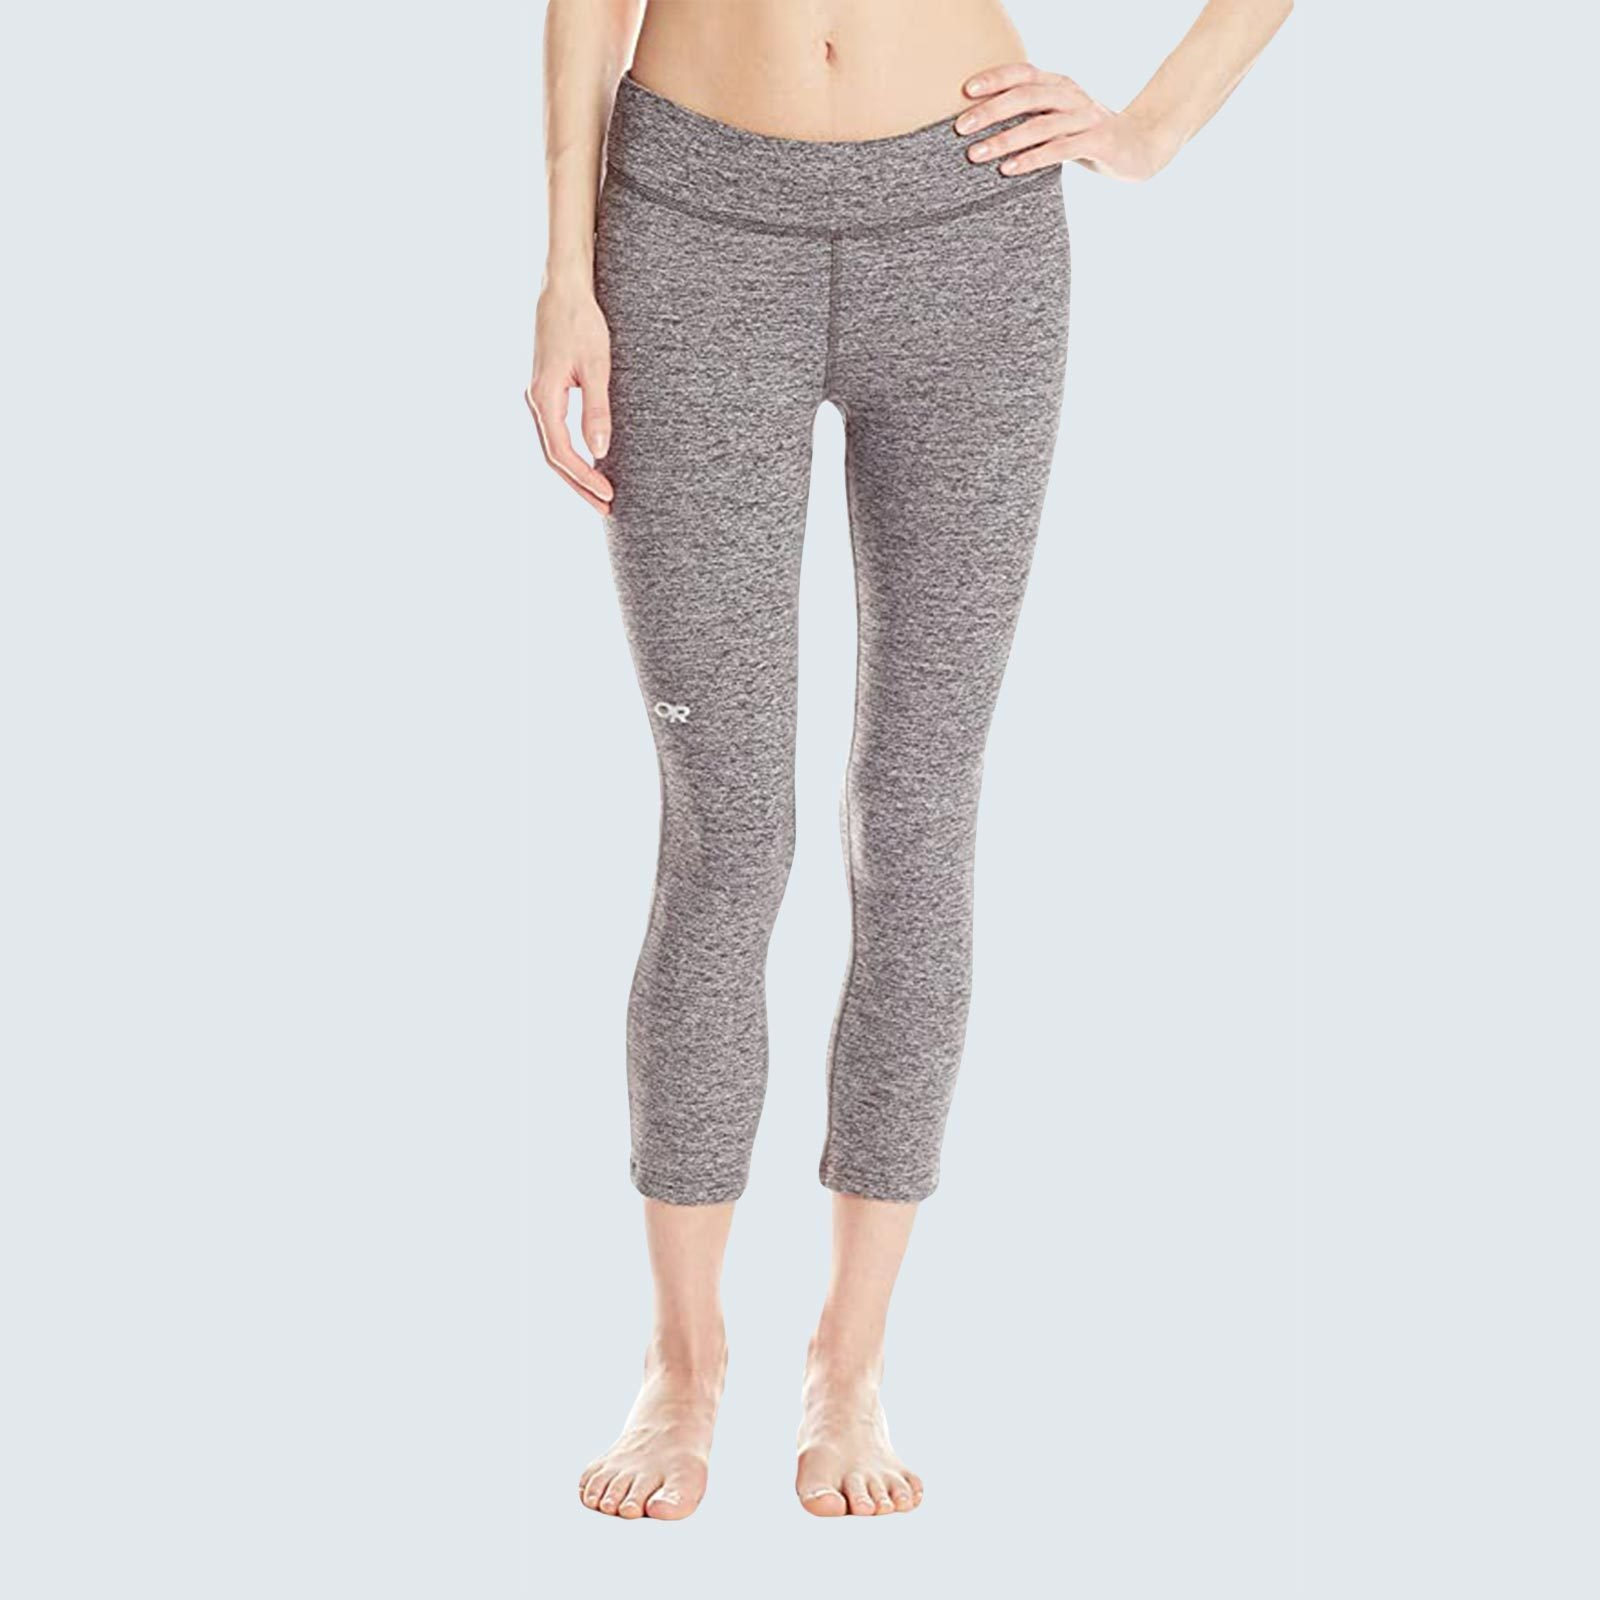 Best leggings for running: Outdoor Research Essentia Tights